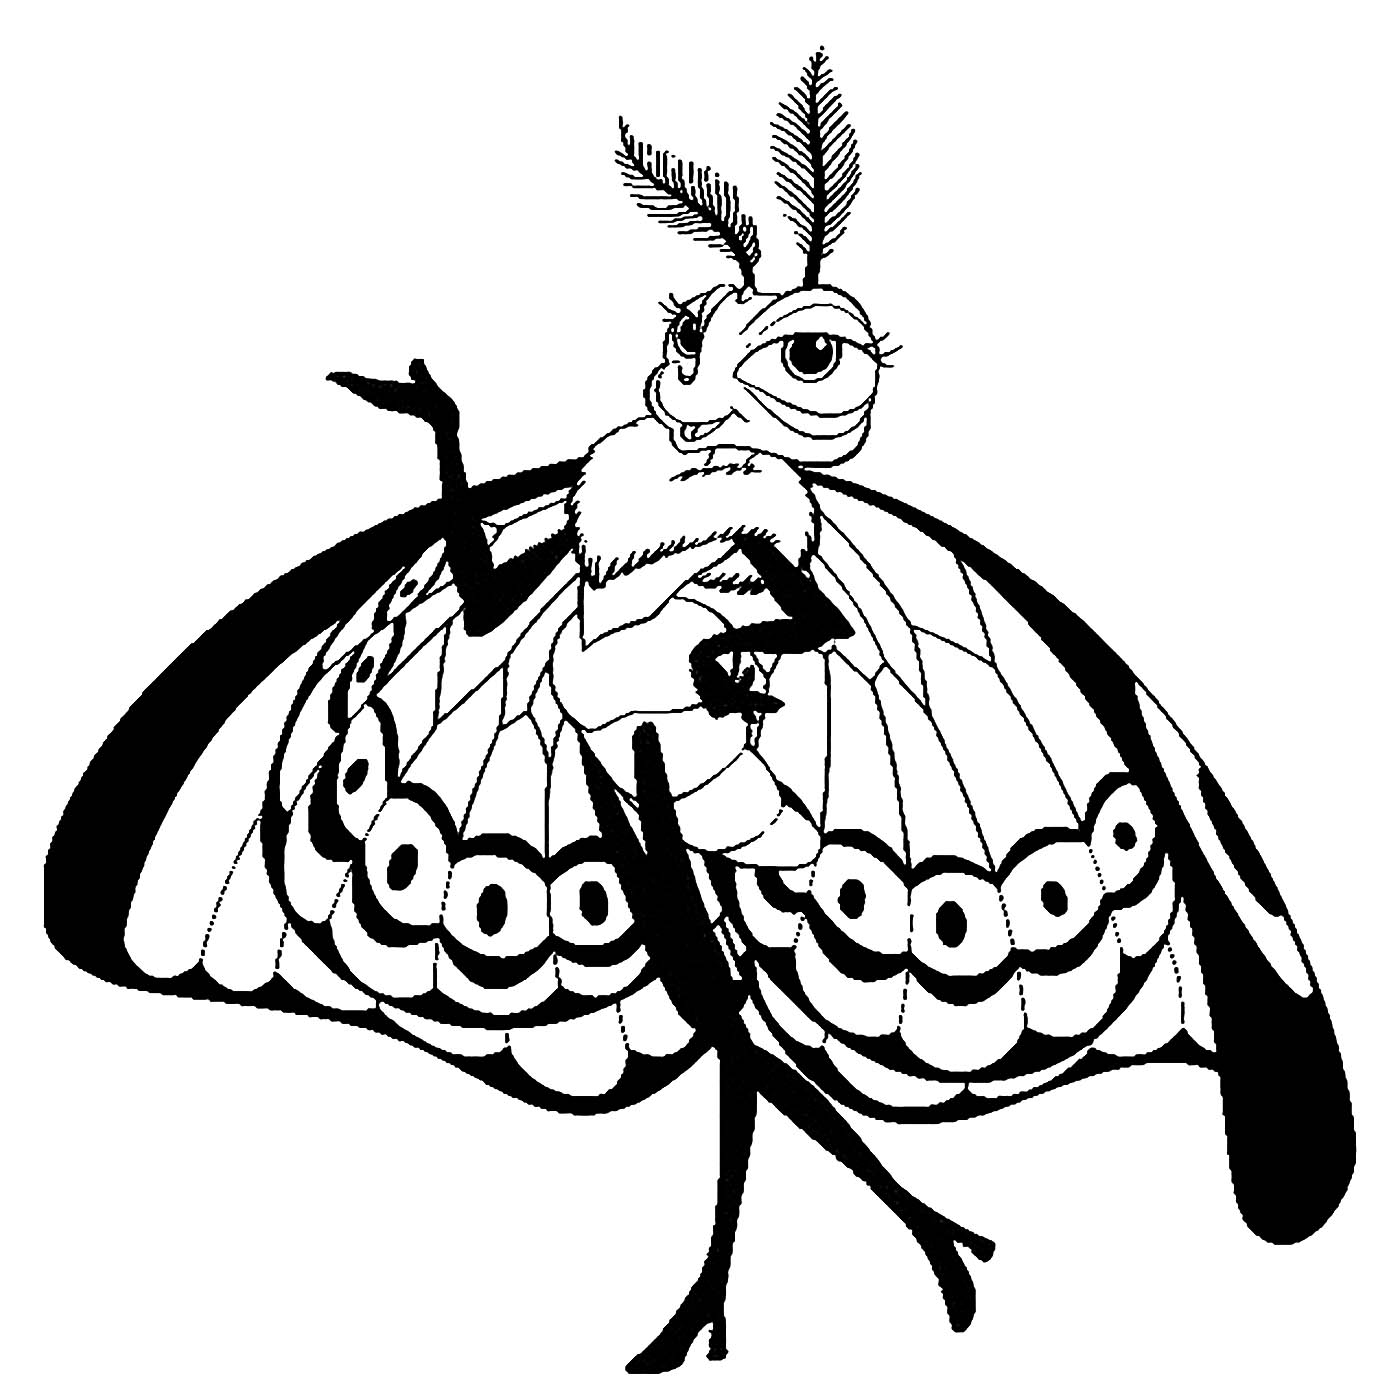 coloring pages bugs free printable bug coloring pages for kids coloring pages bugs